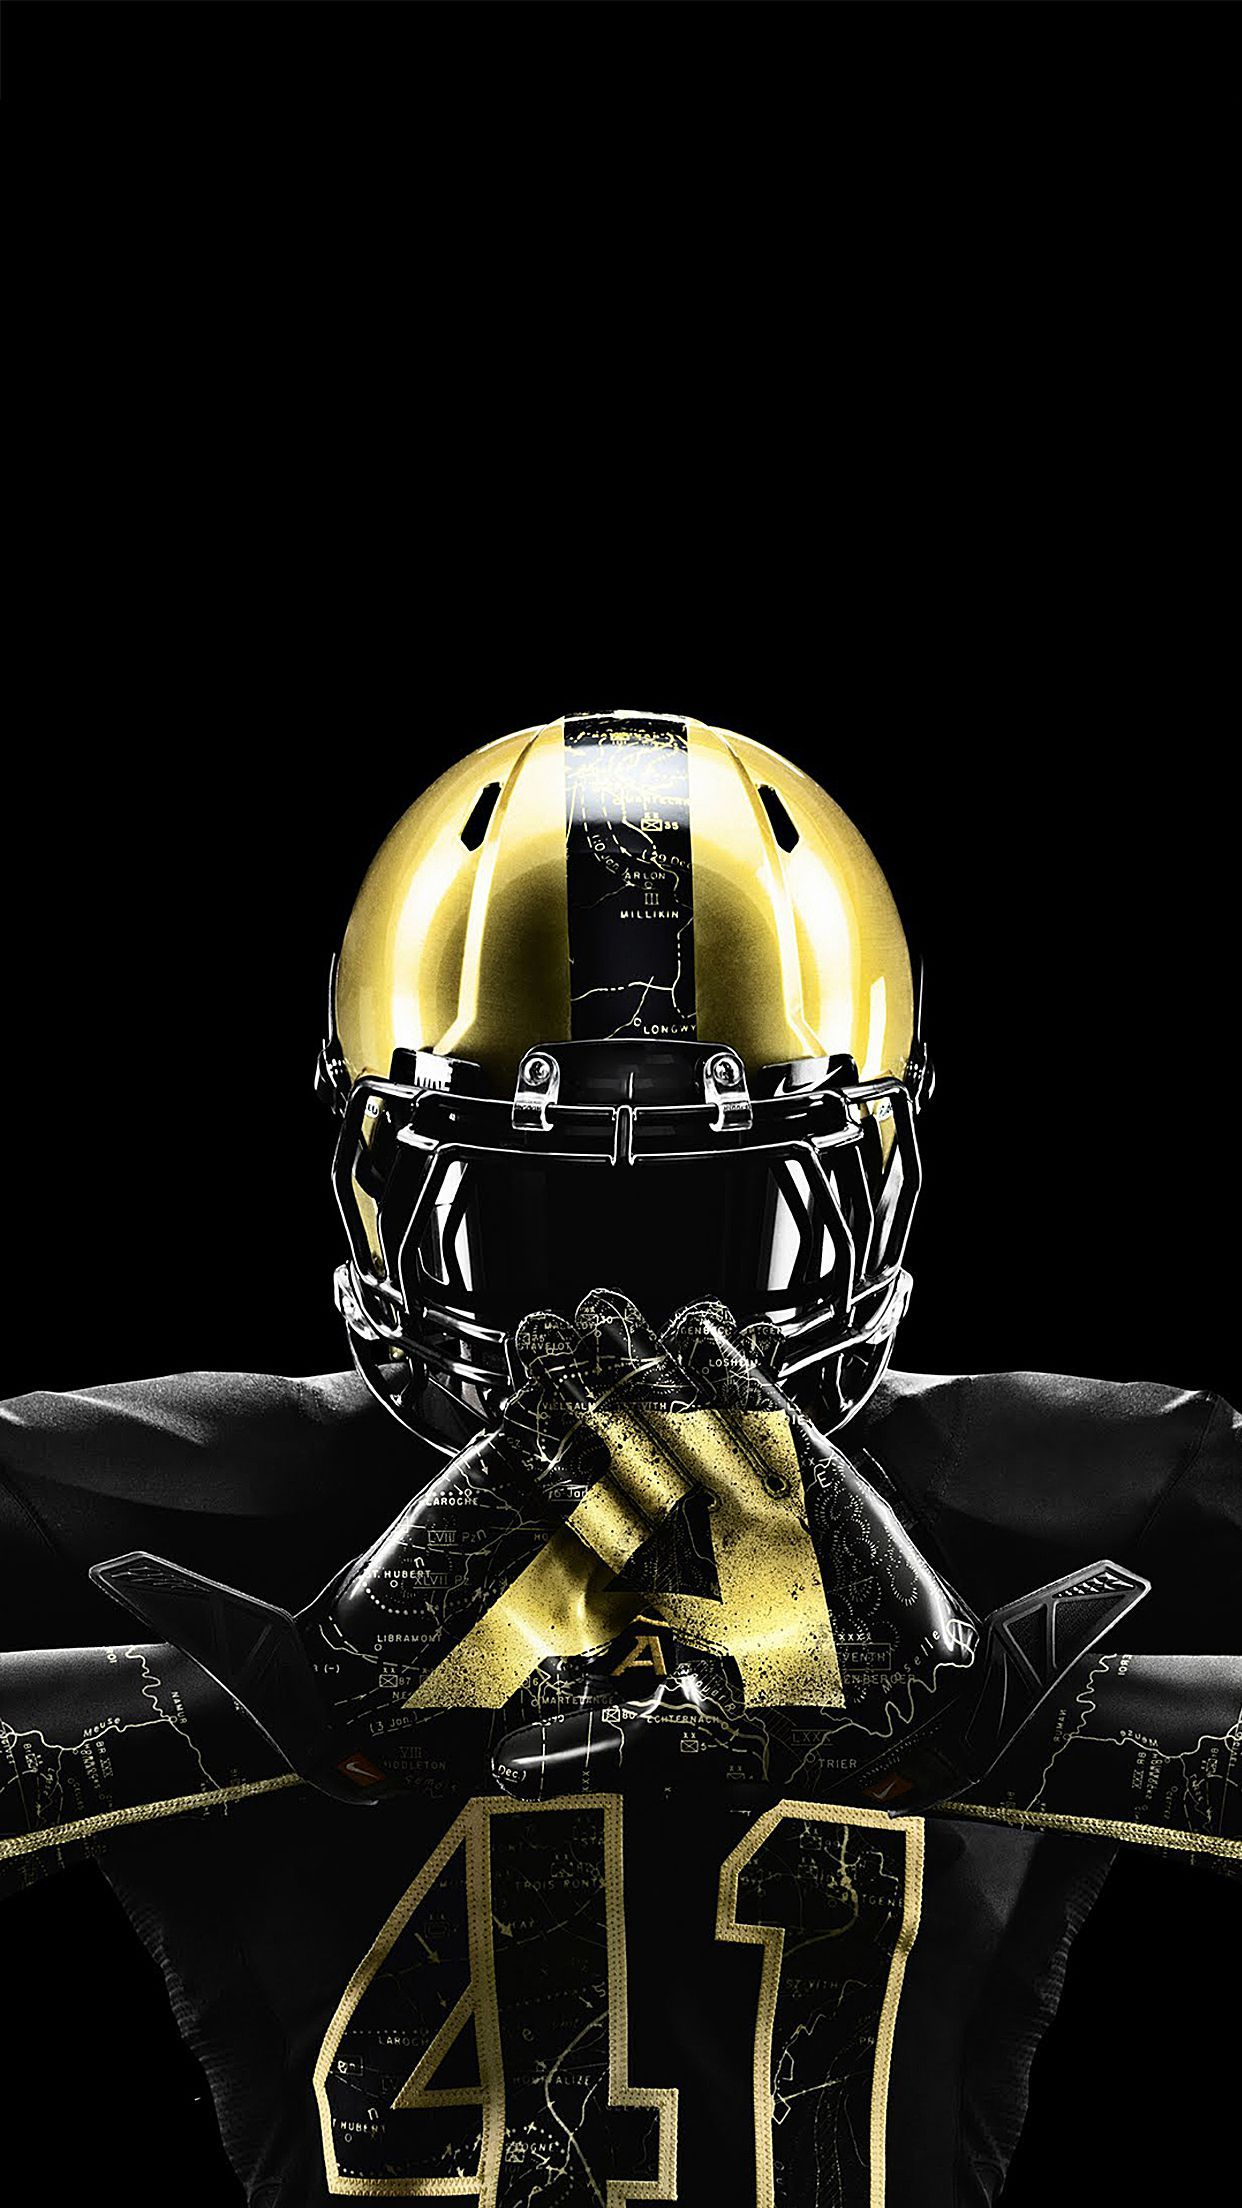 Pin By Hardcoregames Hd On Football In 2020 Football Wallpaper Iphone Army Black Knights Football Football Wallpaper